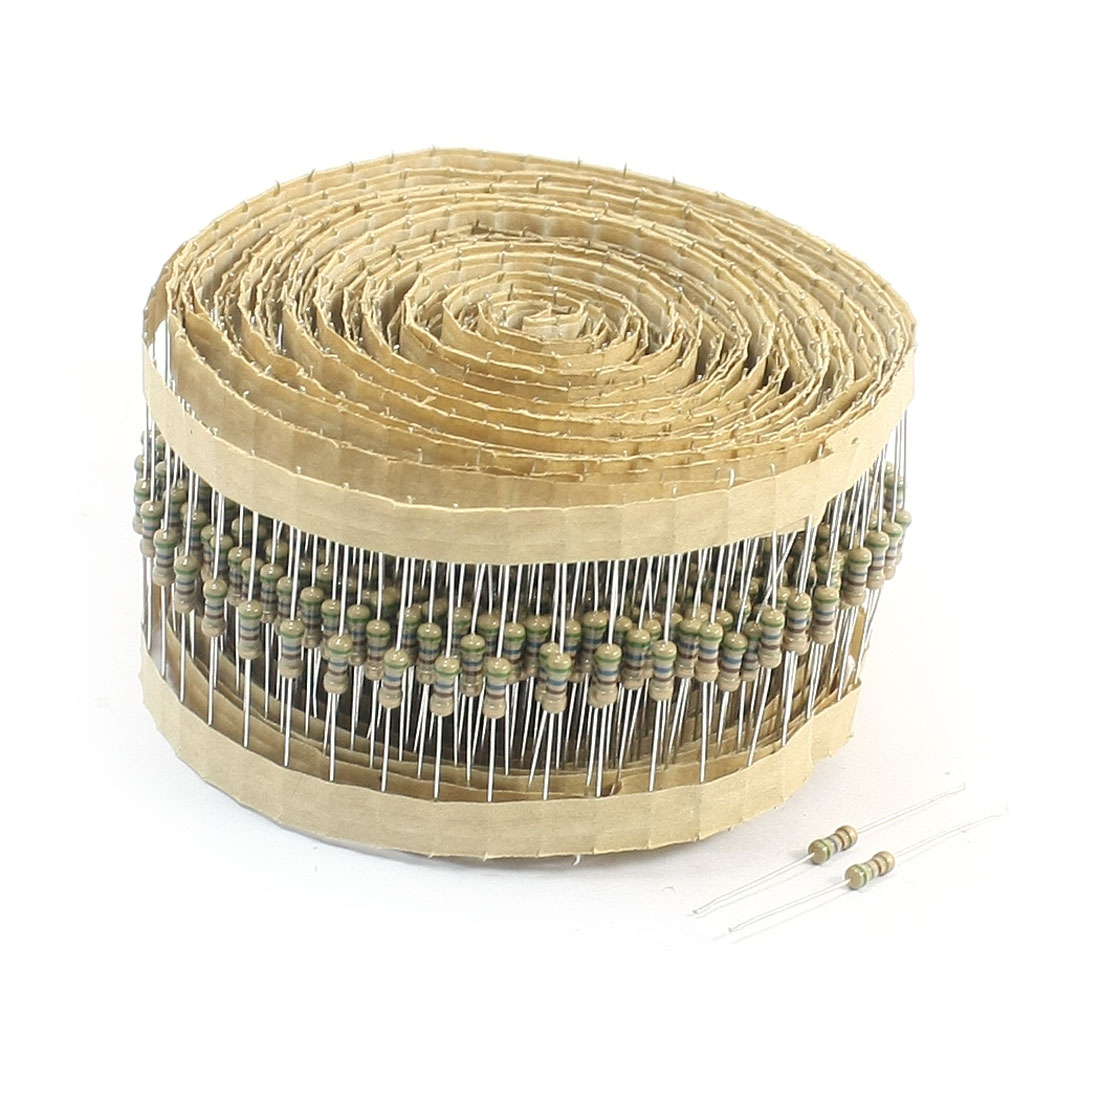 800 Pcs 560 Ohm 0.25W 5% Tolerance 4-Color Ring Axial Lead Type Through Hole Mounting Carbon Film Fixed Resistors for PCB